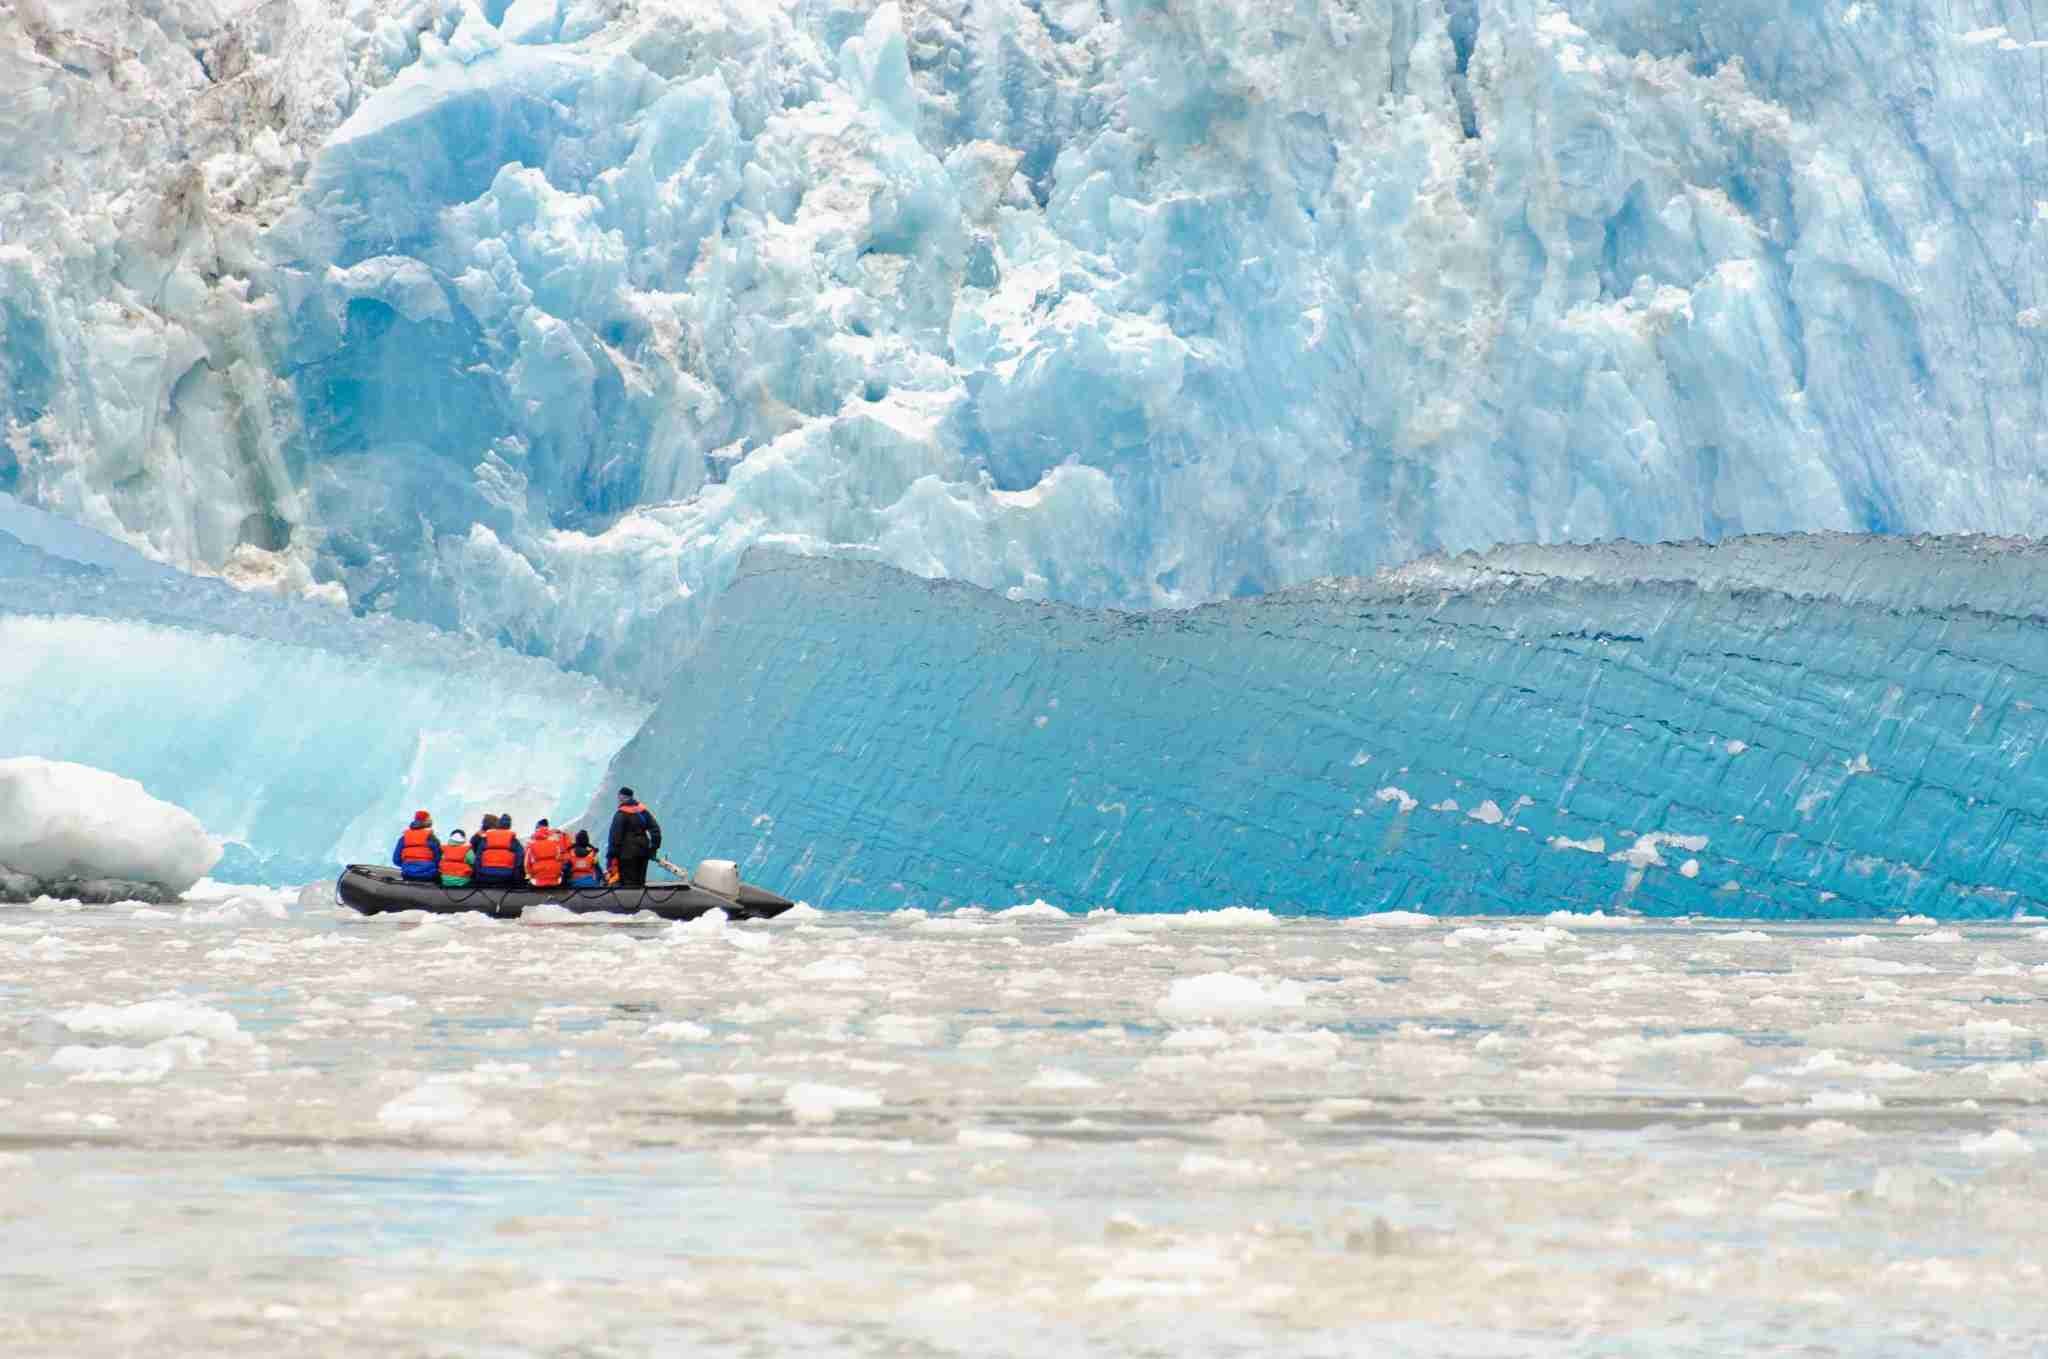 Some ships offer skift expeditions that get close to Tracy Arm. (Photo by earleliason/Getty Images)